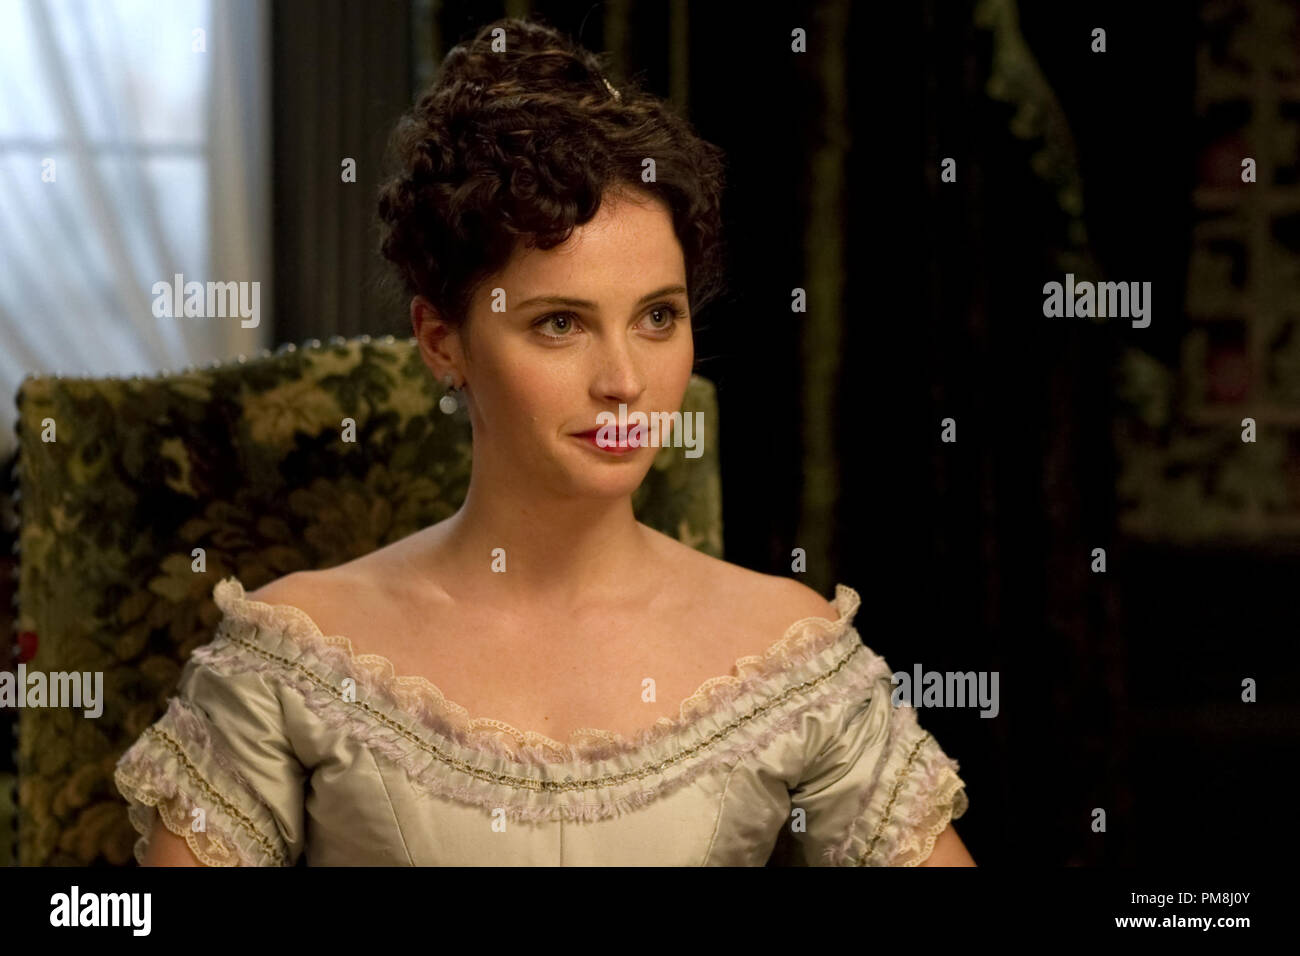 Felicity Jones stars as Emily Dalrymple in Sony Pictures Classics' Hysteria (2012). Photo credit by Ricardo Vaz Palma. - Stock Image